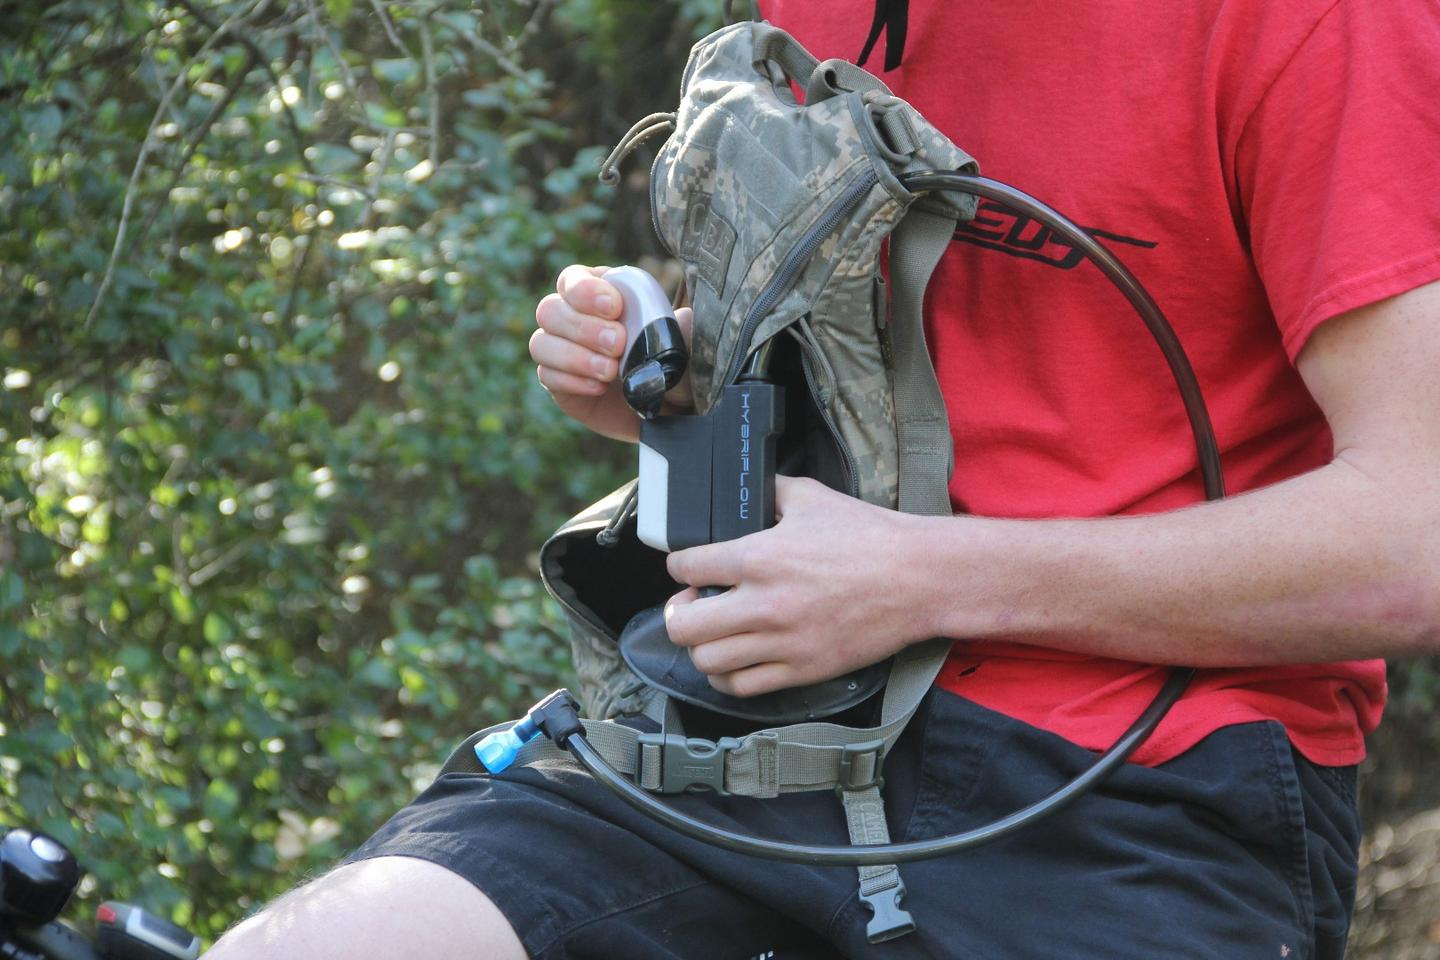 HybriFlow reportedly works with most popular hydration packs